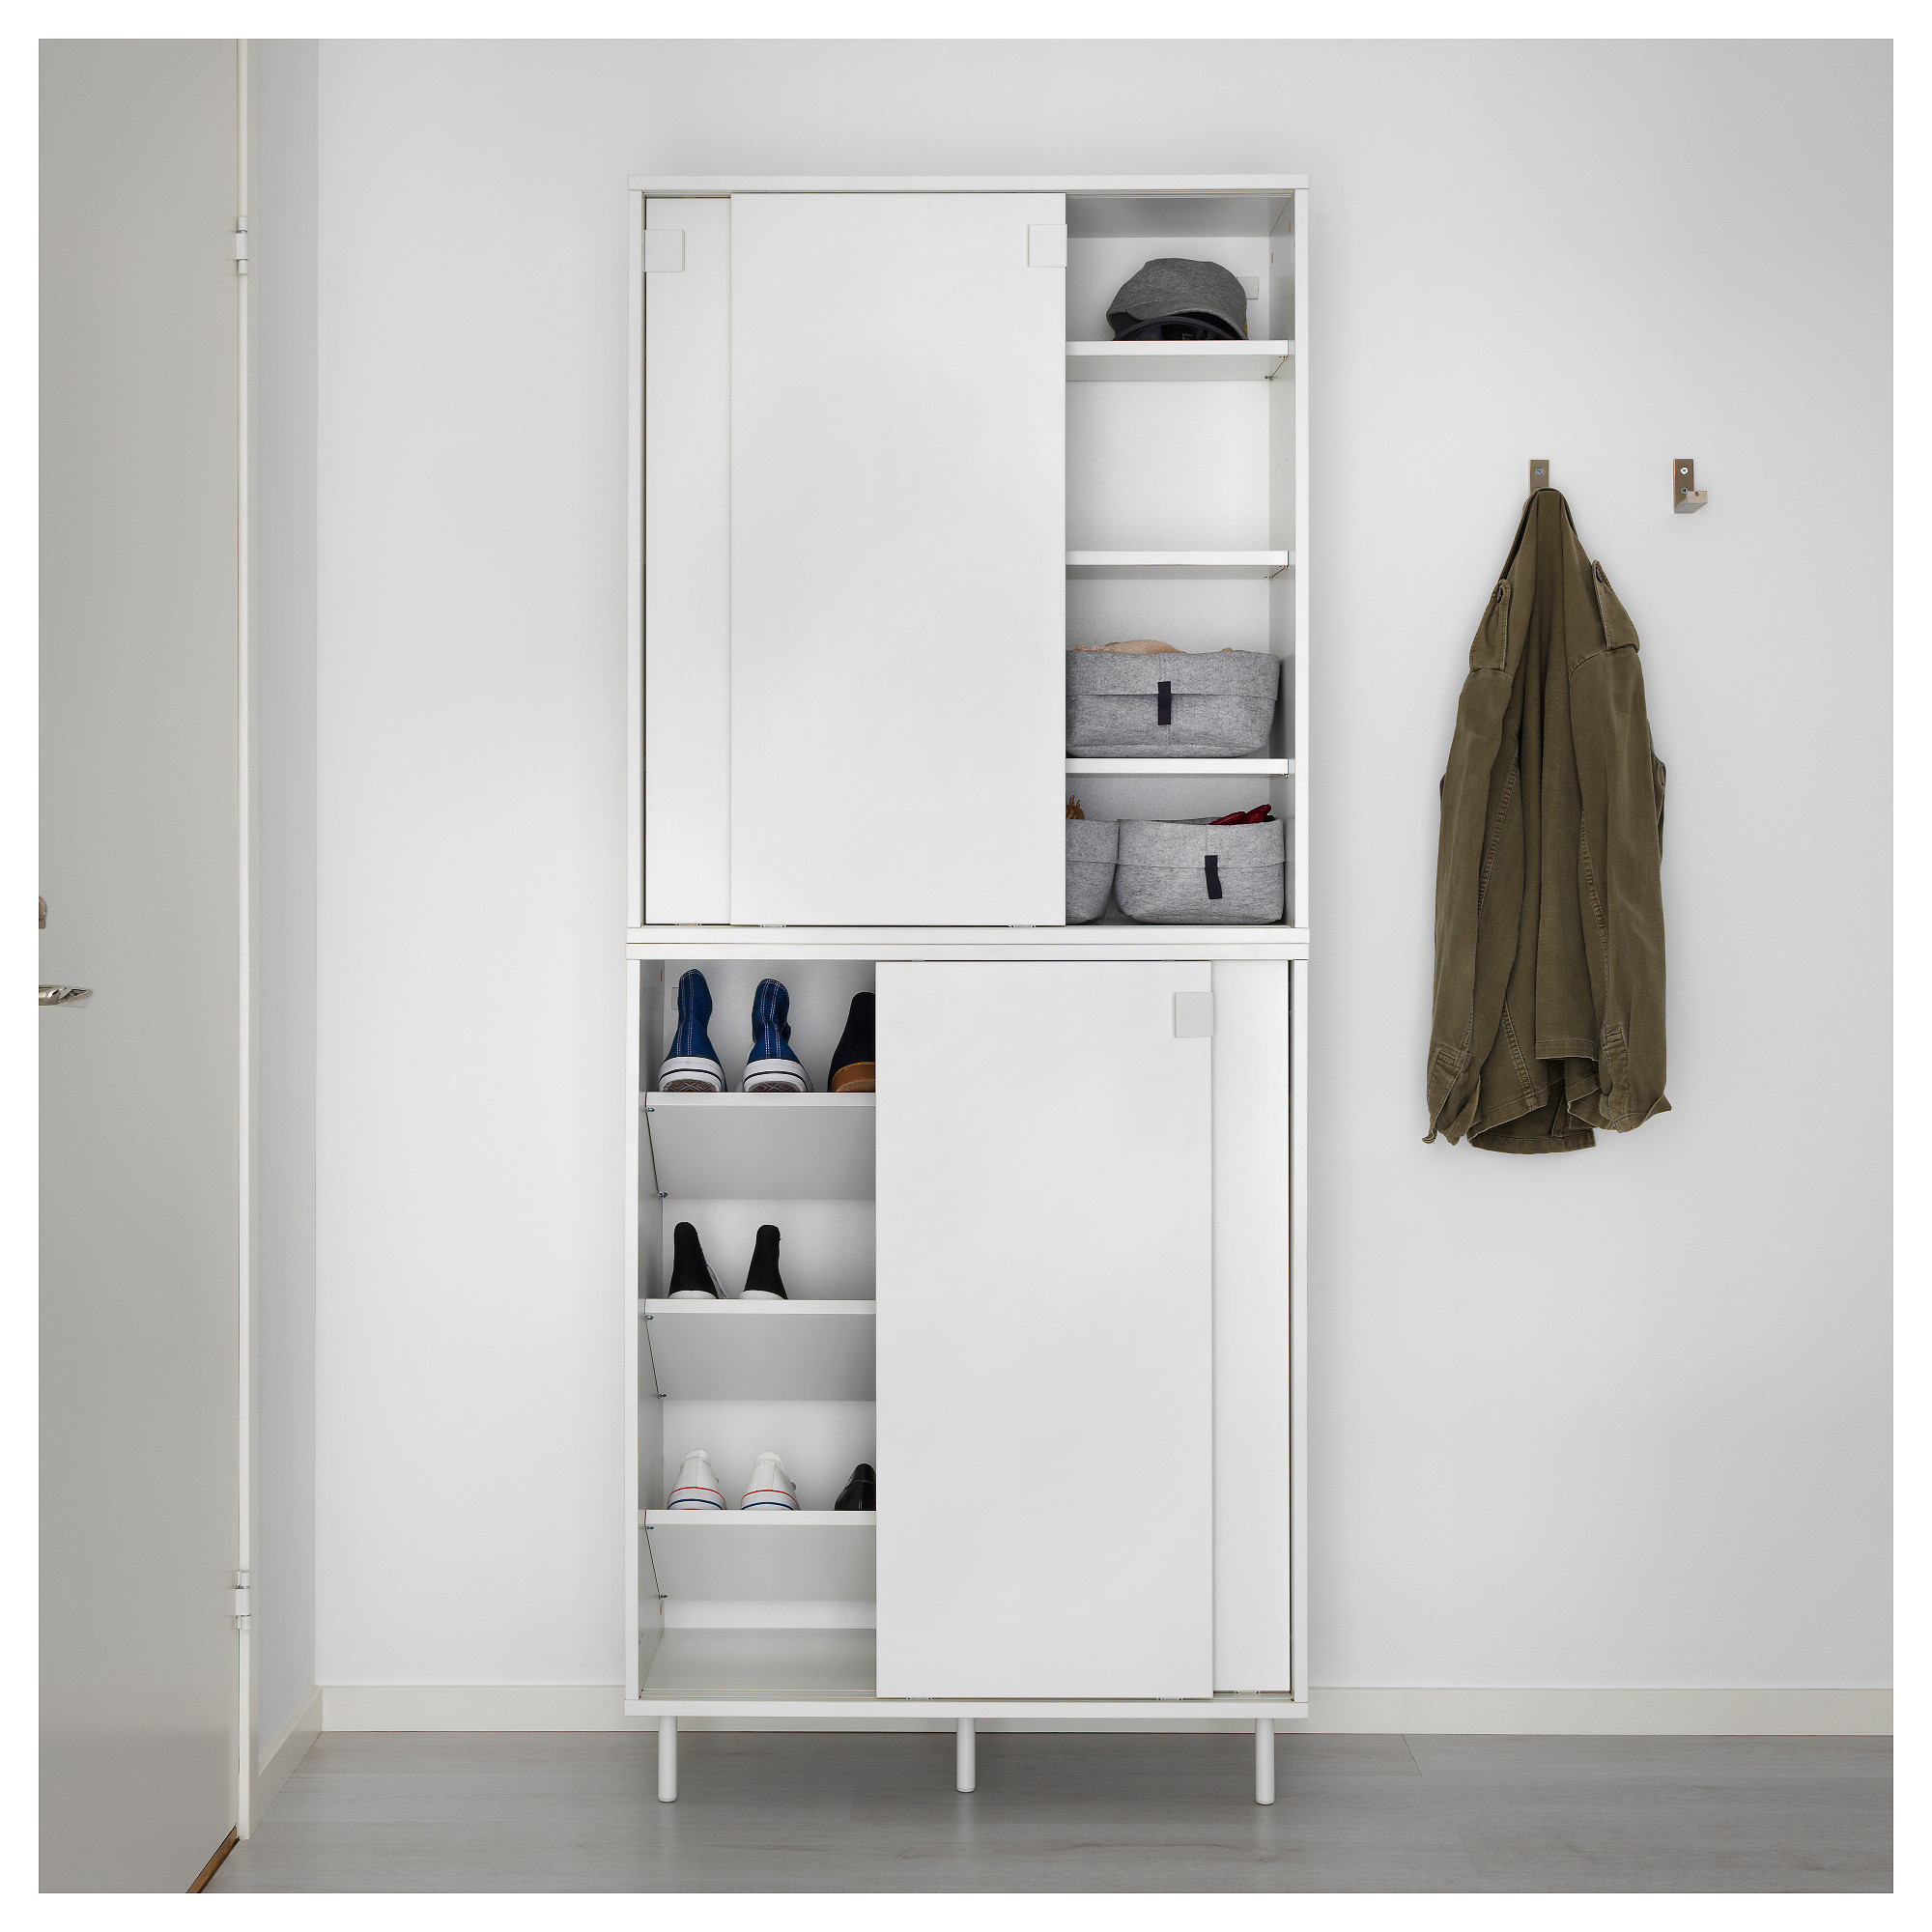 Design Ikea Shoe Storage shoestorage cabinet ikea